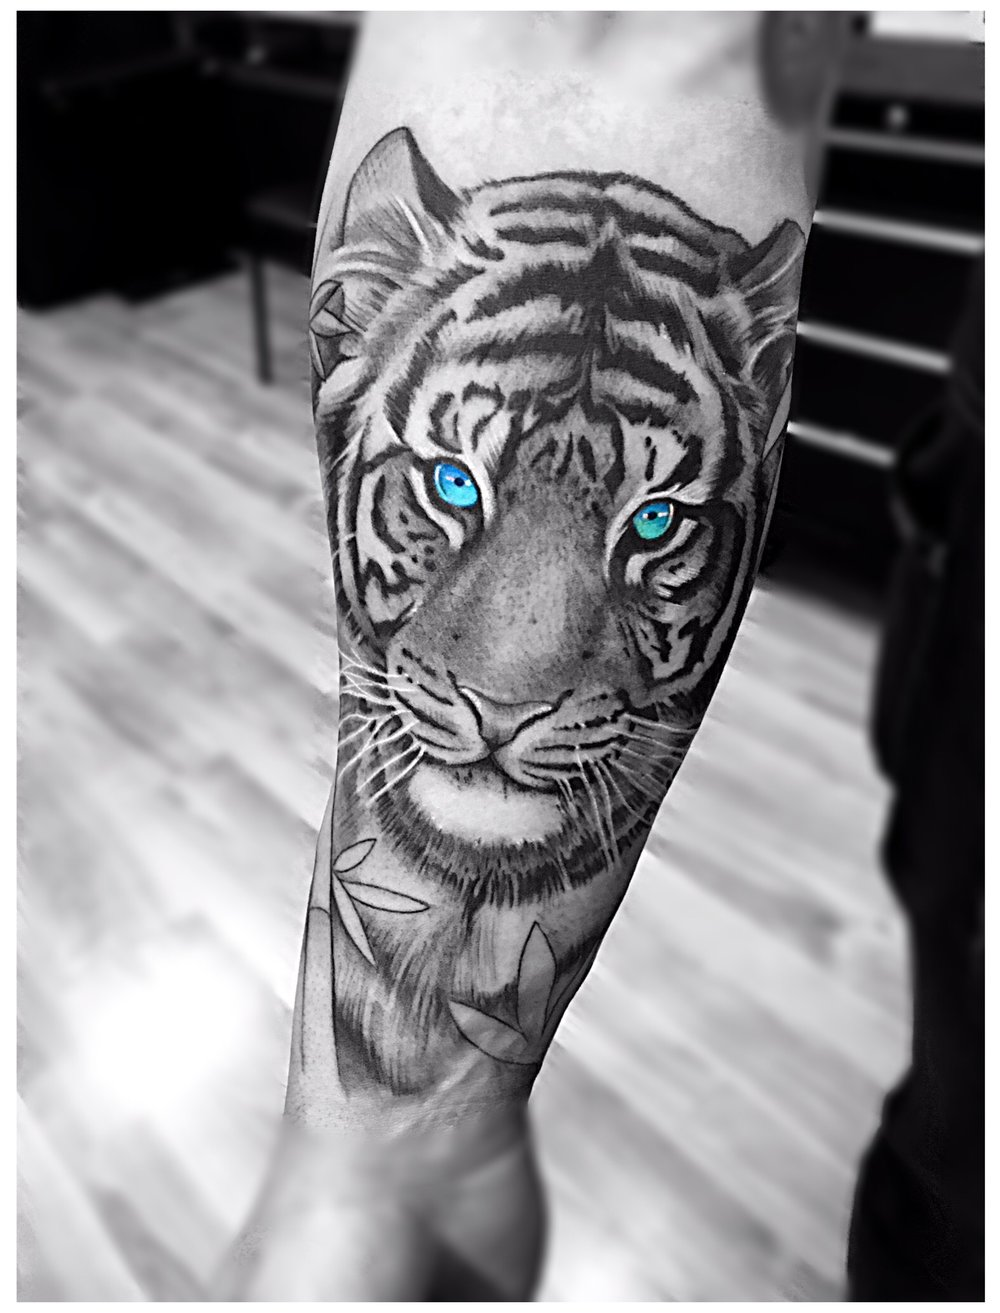 tattoo-tiger-black-and-white.jpg